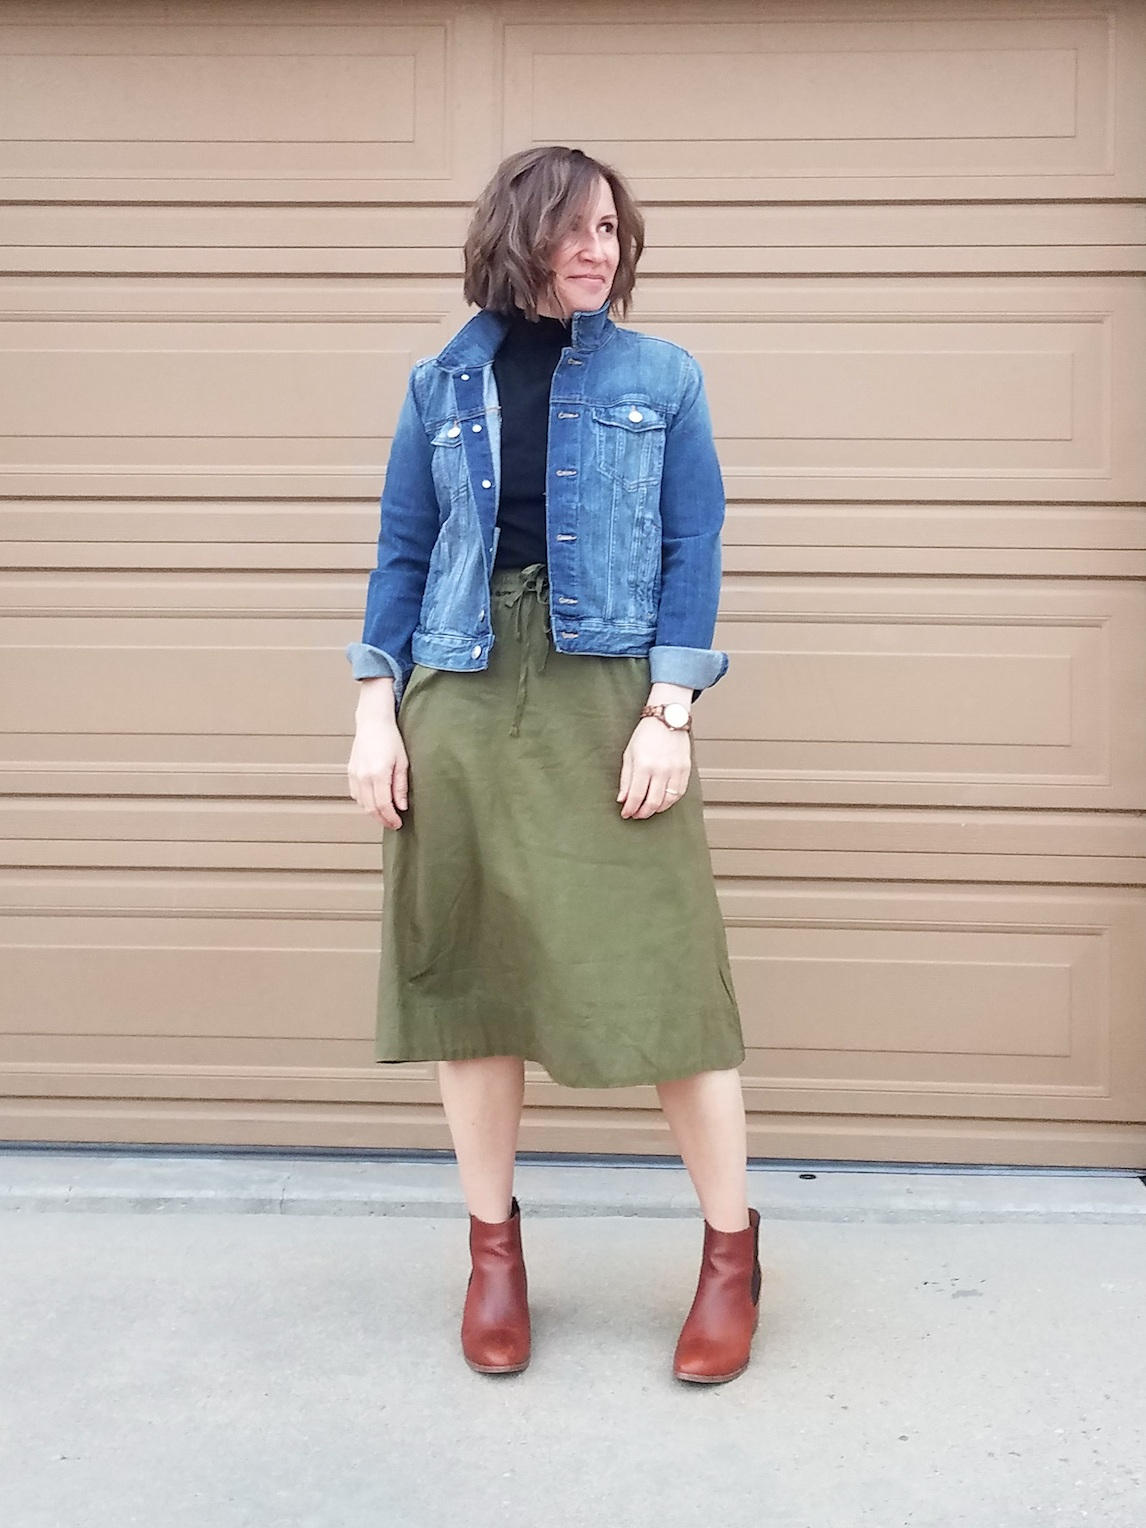 Casual Jean Jacket Skirt Boots Look // Week Of Outfits With Paige Marchi On The Good Trade